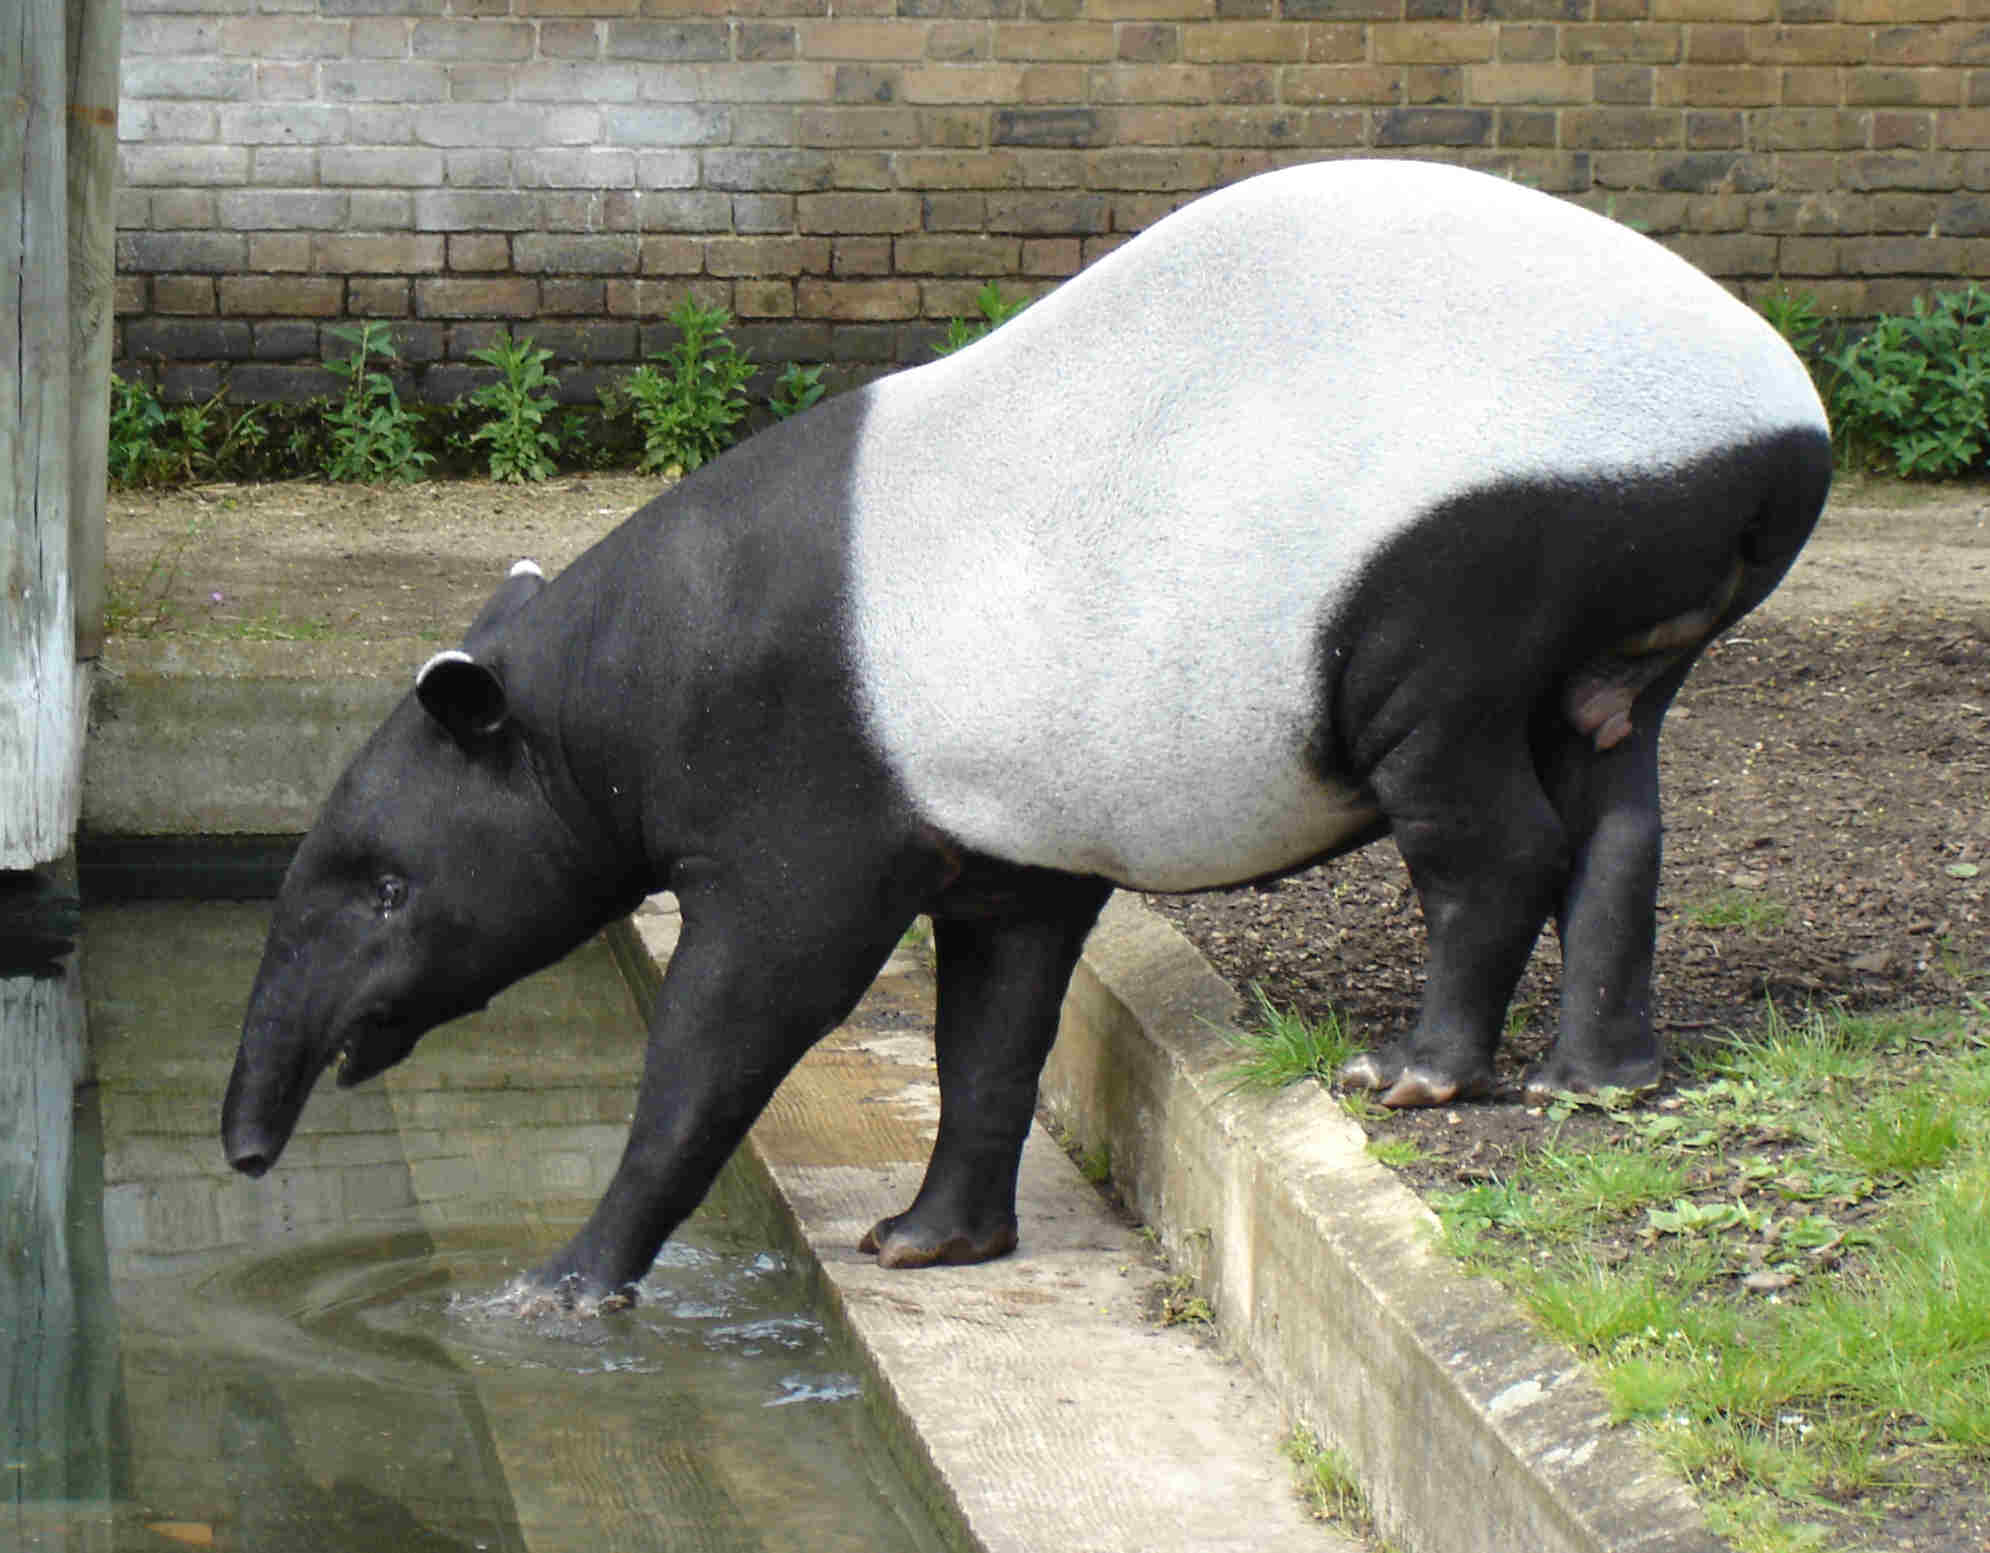 https://upload.wikimedia.org/wikipedia/commons/b/bd/Malayan_Tapir.JPG